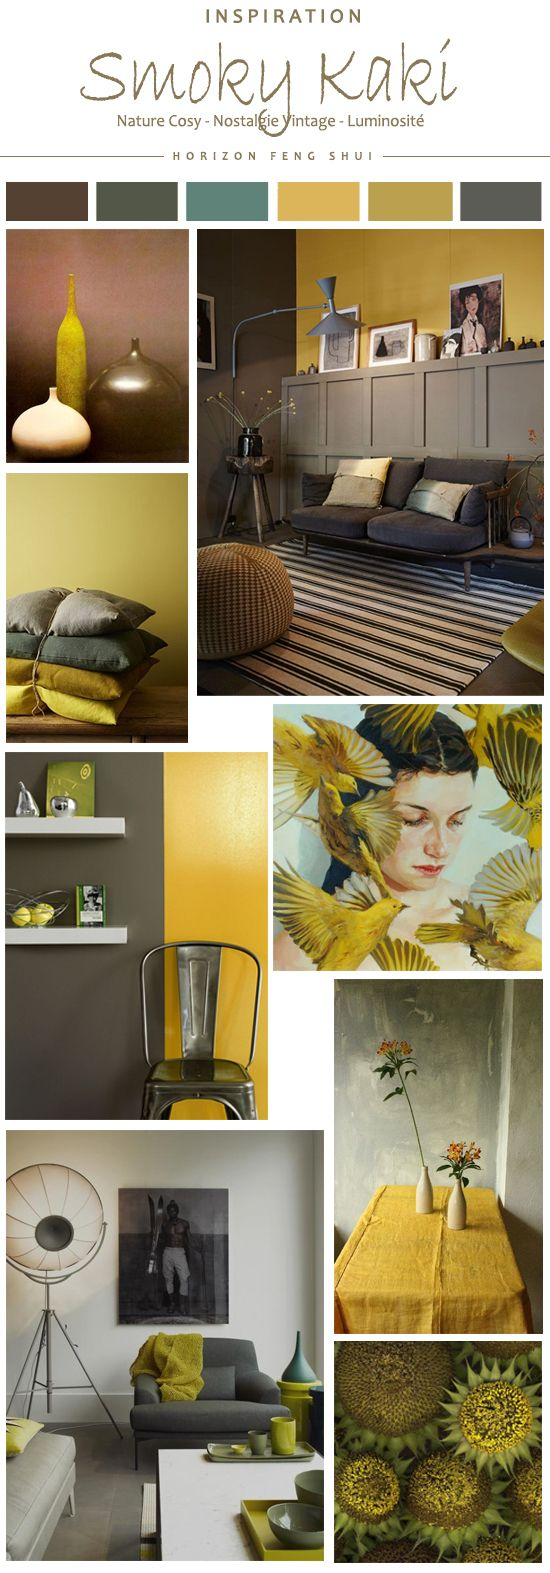 Tendance Couleur : Smoky Kaki jaune moutarde ocre gris nature ...